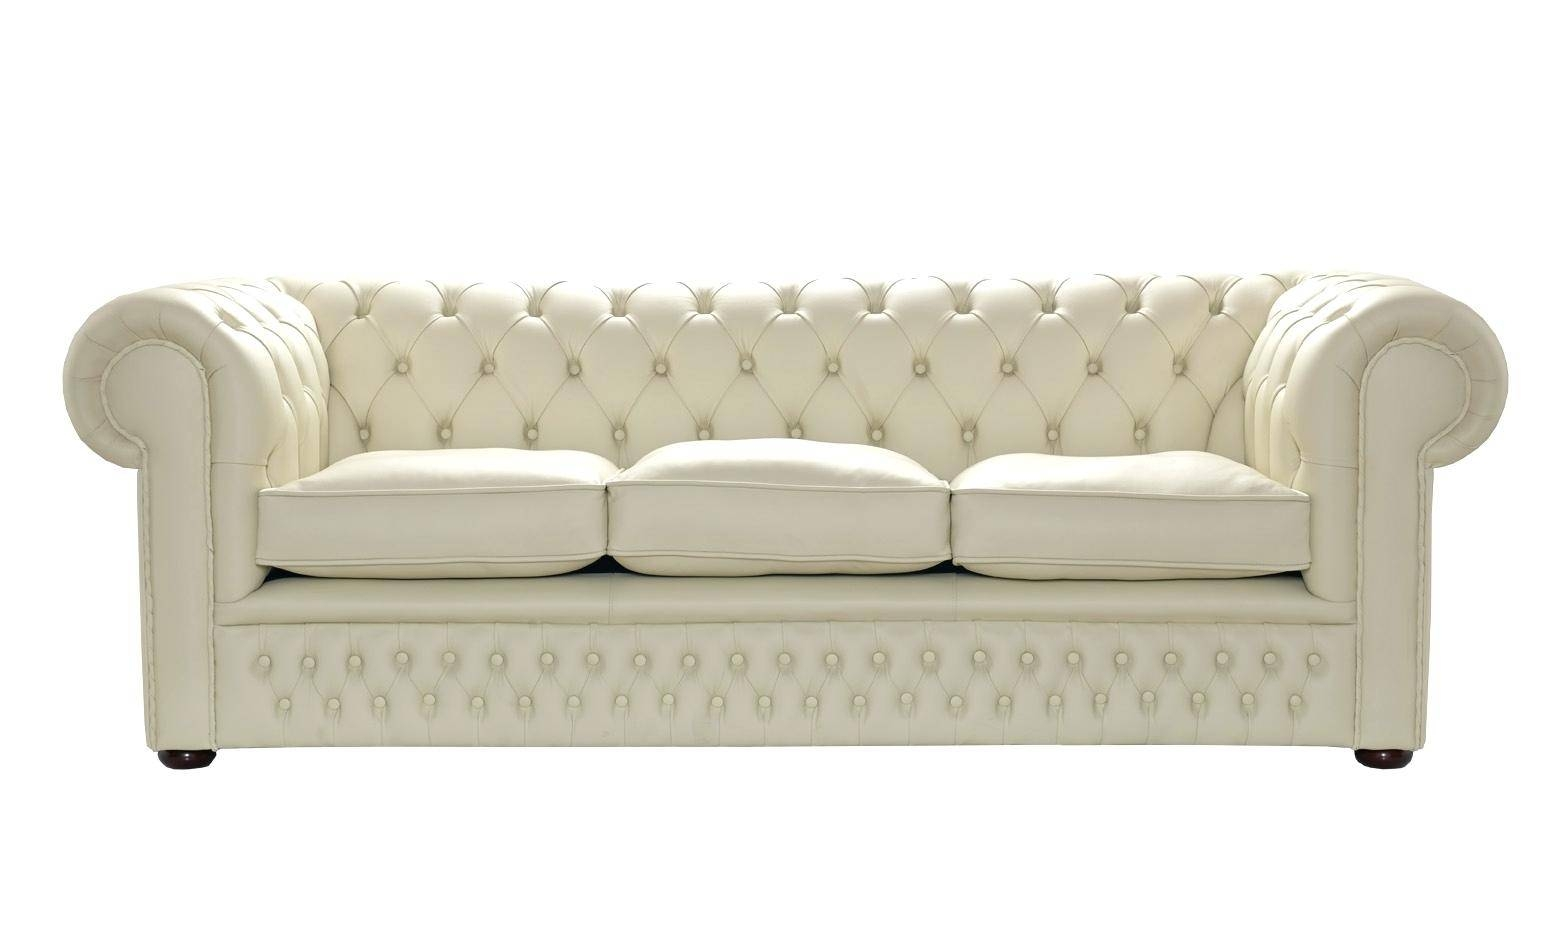 Sofas Center : Cream Colored Sofa Sets Color And Loveseatcream pertaining to Cream Colored Sofa (Image 20 of 25)